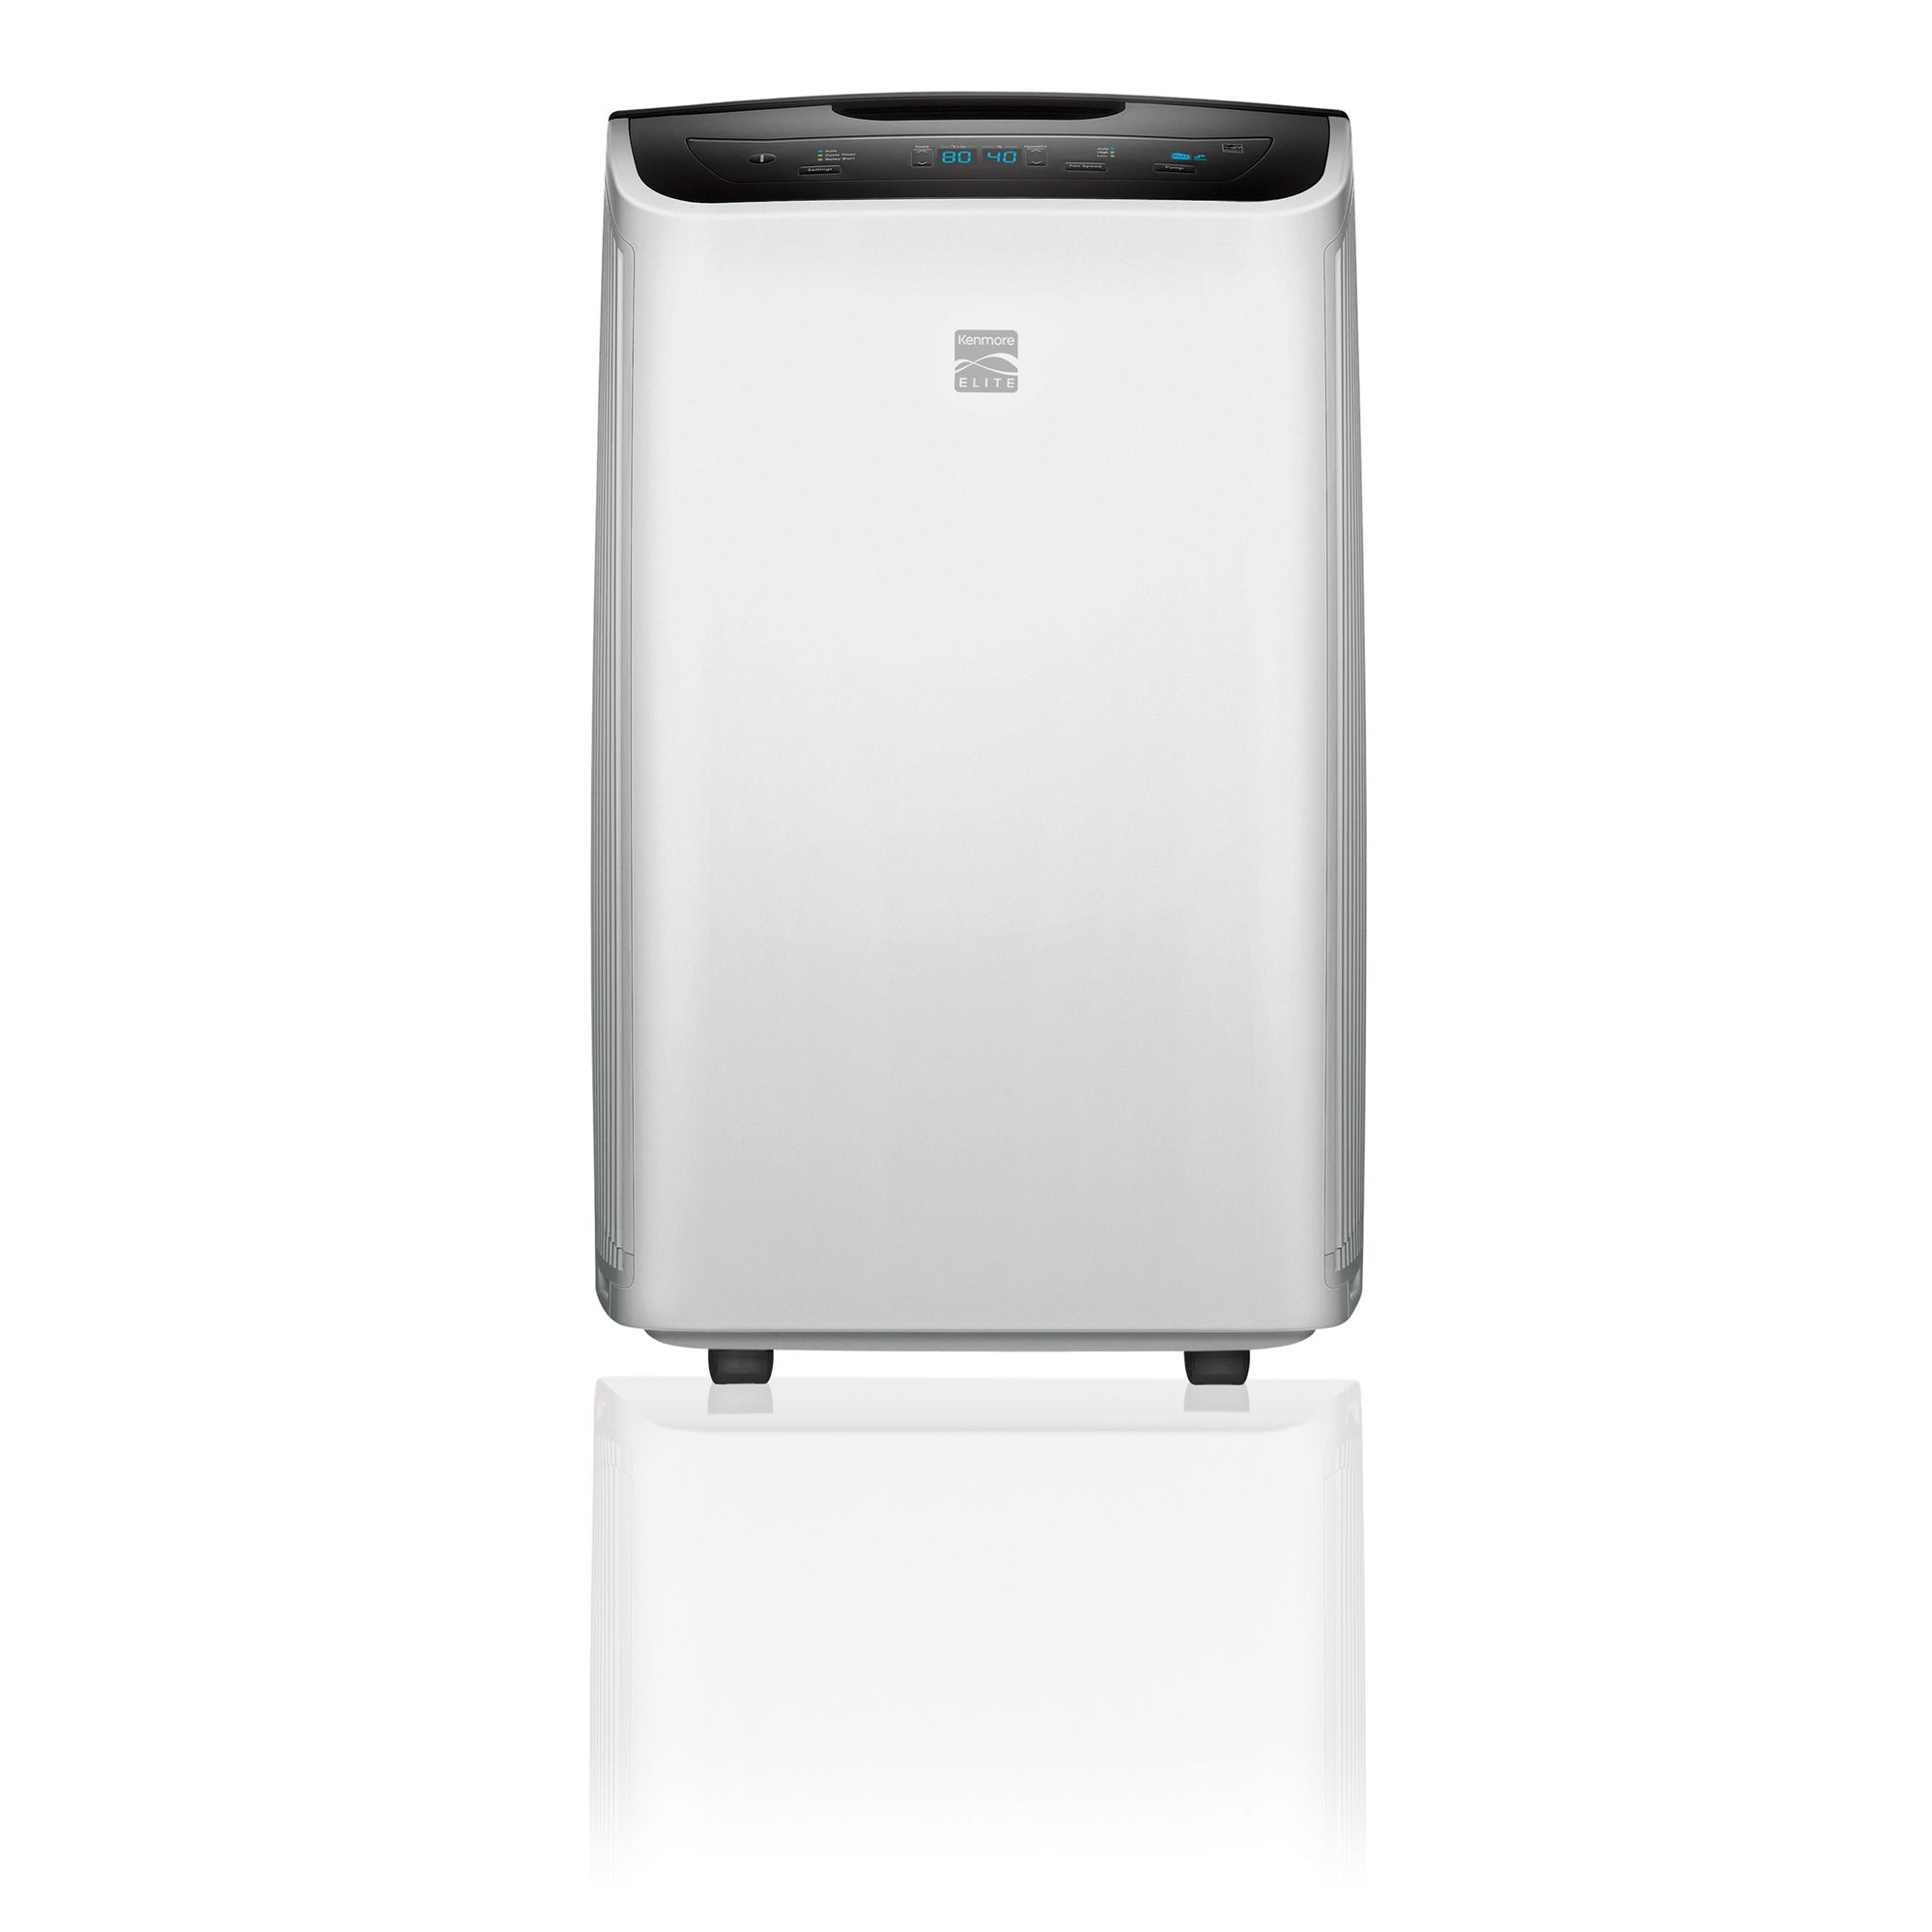 Kenmore Elite 70-pint Dehumidifier with Built-In Pump and Remote Monitoring